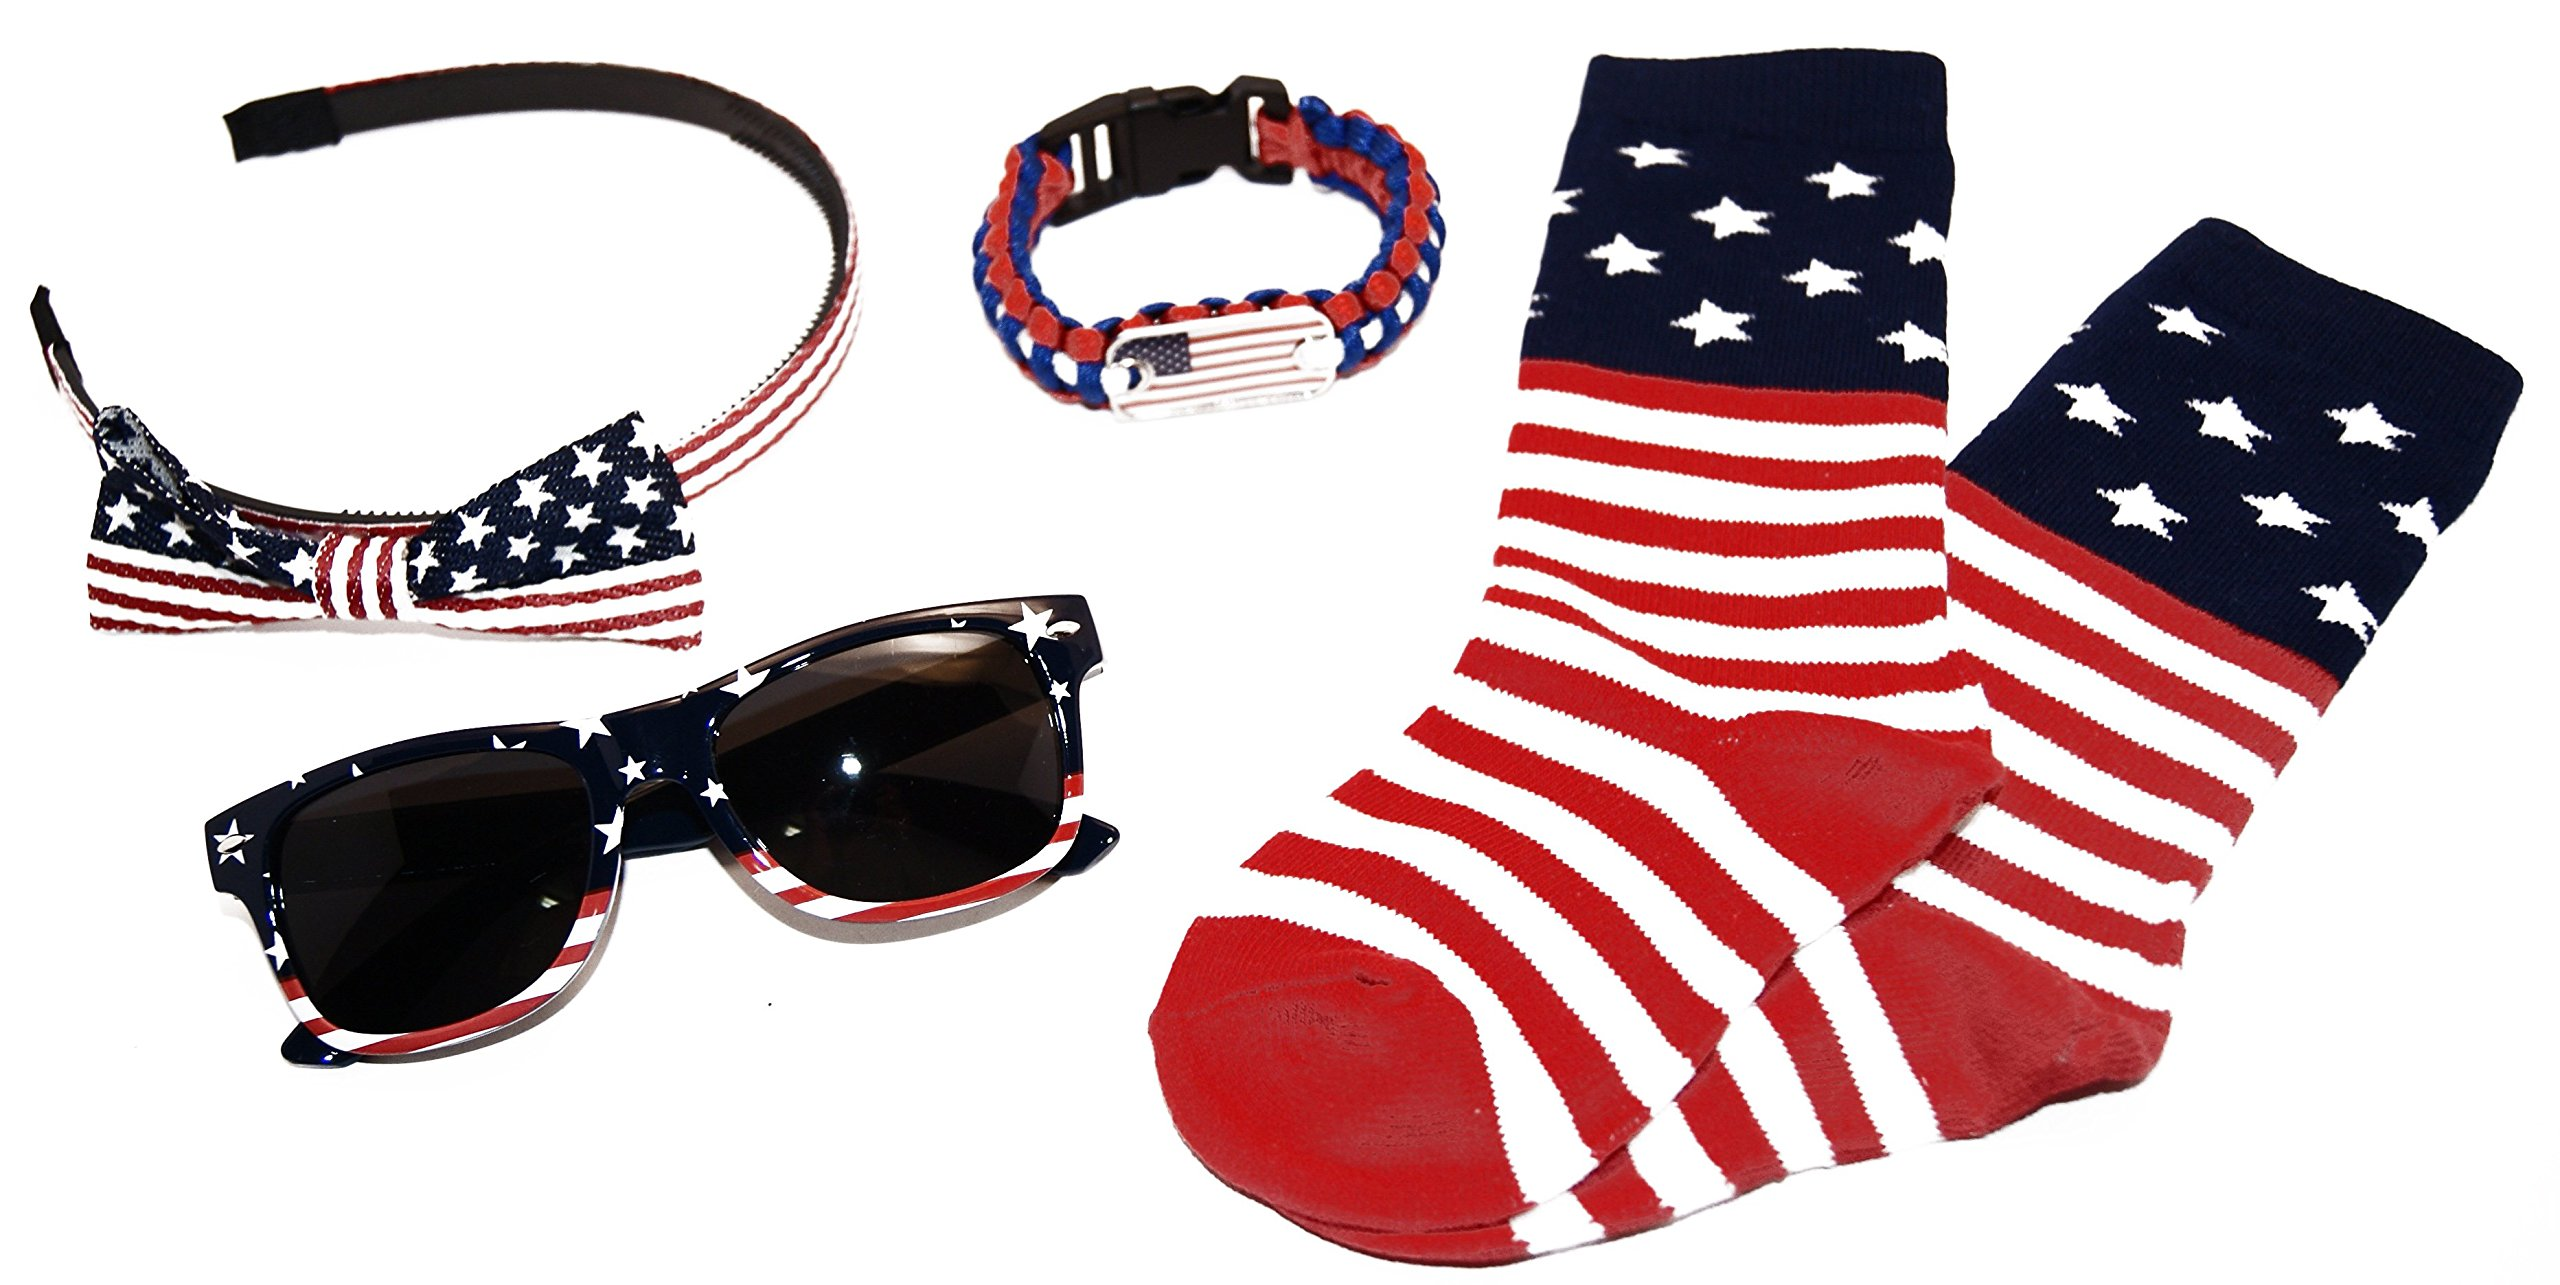 Little Miss USA Accessory 6 Piece Kit for Girls 2 to 6 Socks/Sunglasses/Small Bow